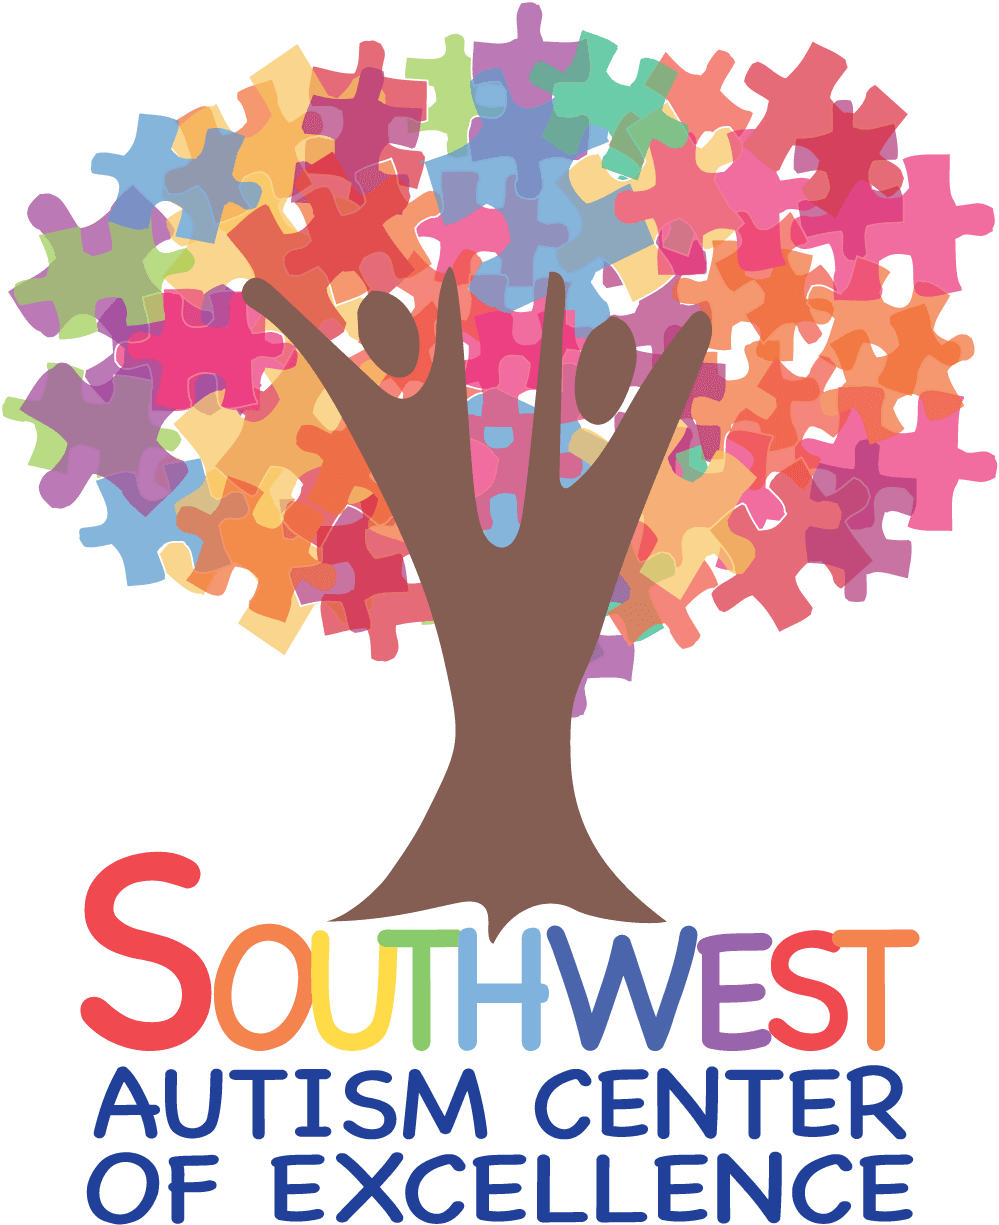 Southwest Autism Center of Excellence logo